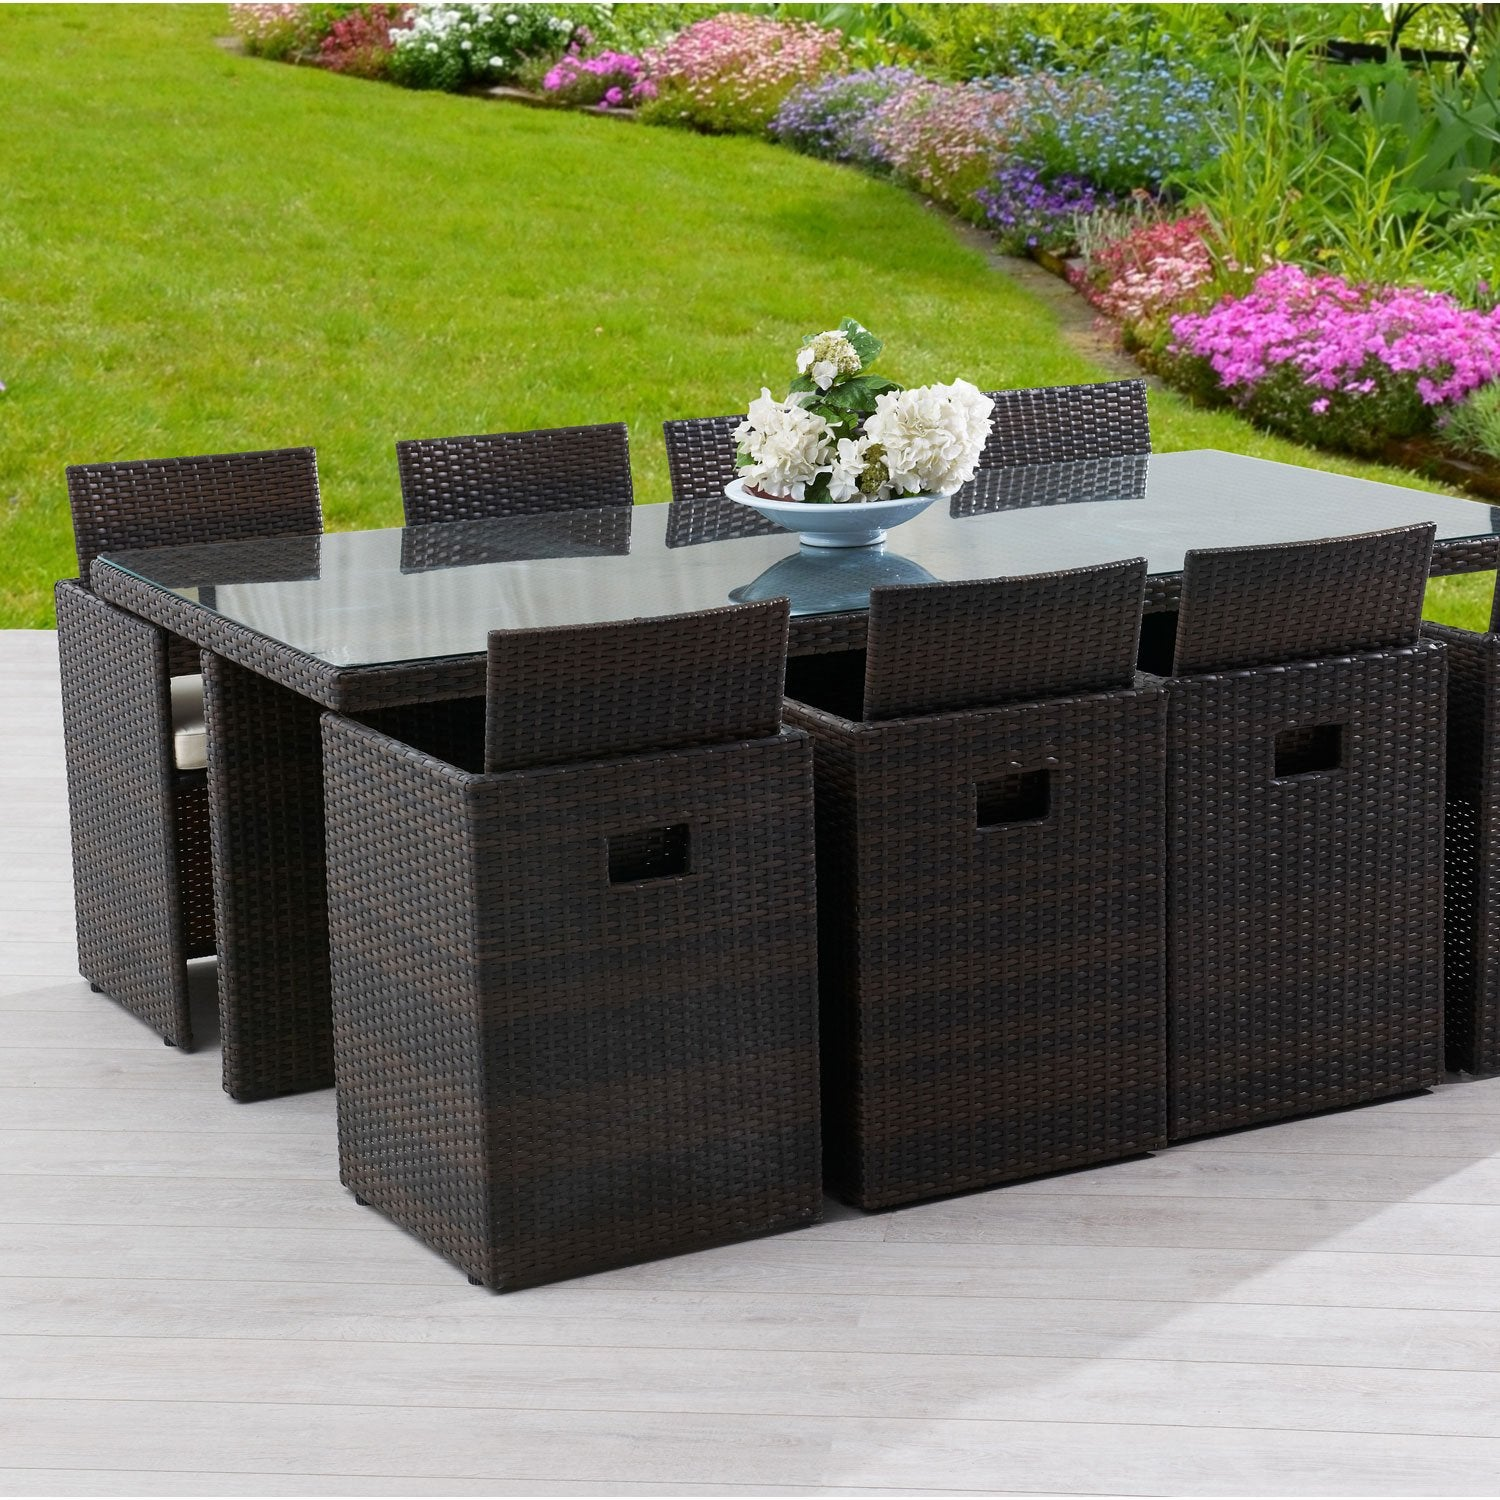 Salon de jardin encastrable r sine tress e marron 1 table - Salon de jardin en resine leroy merlin ...